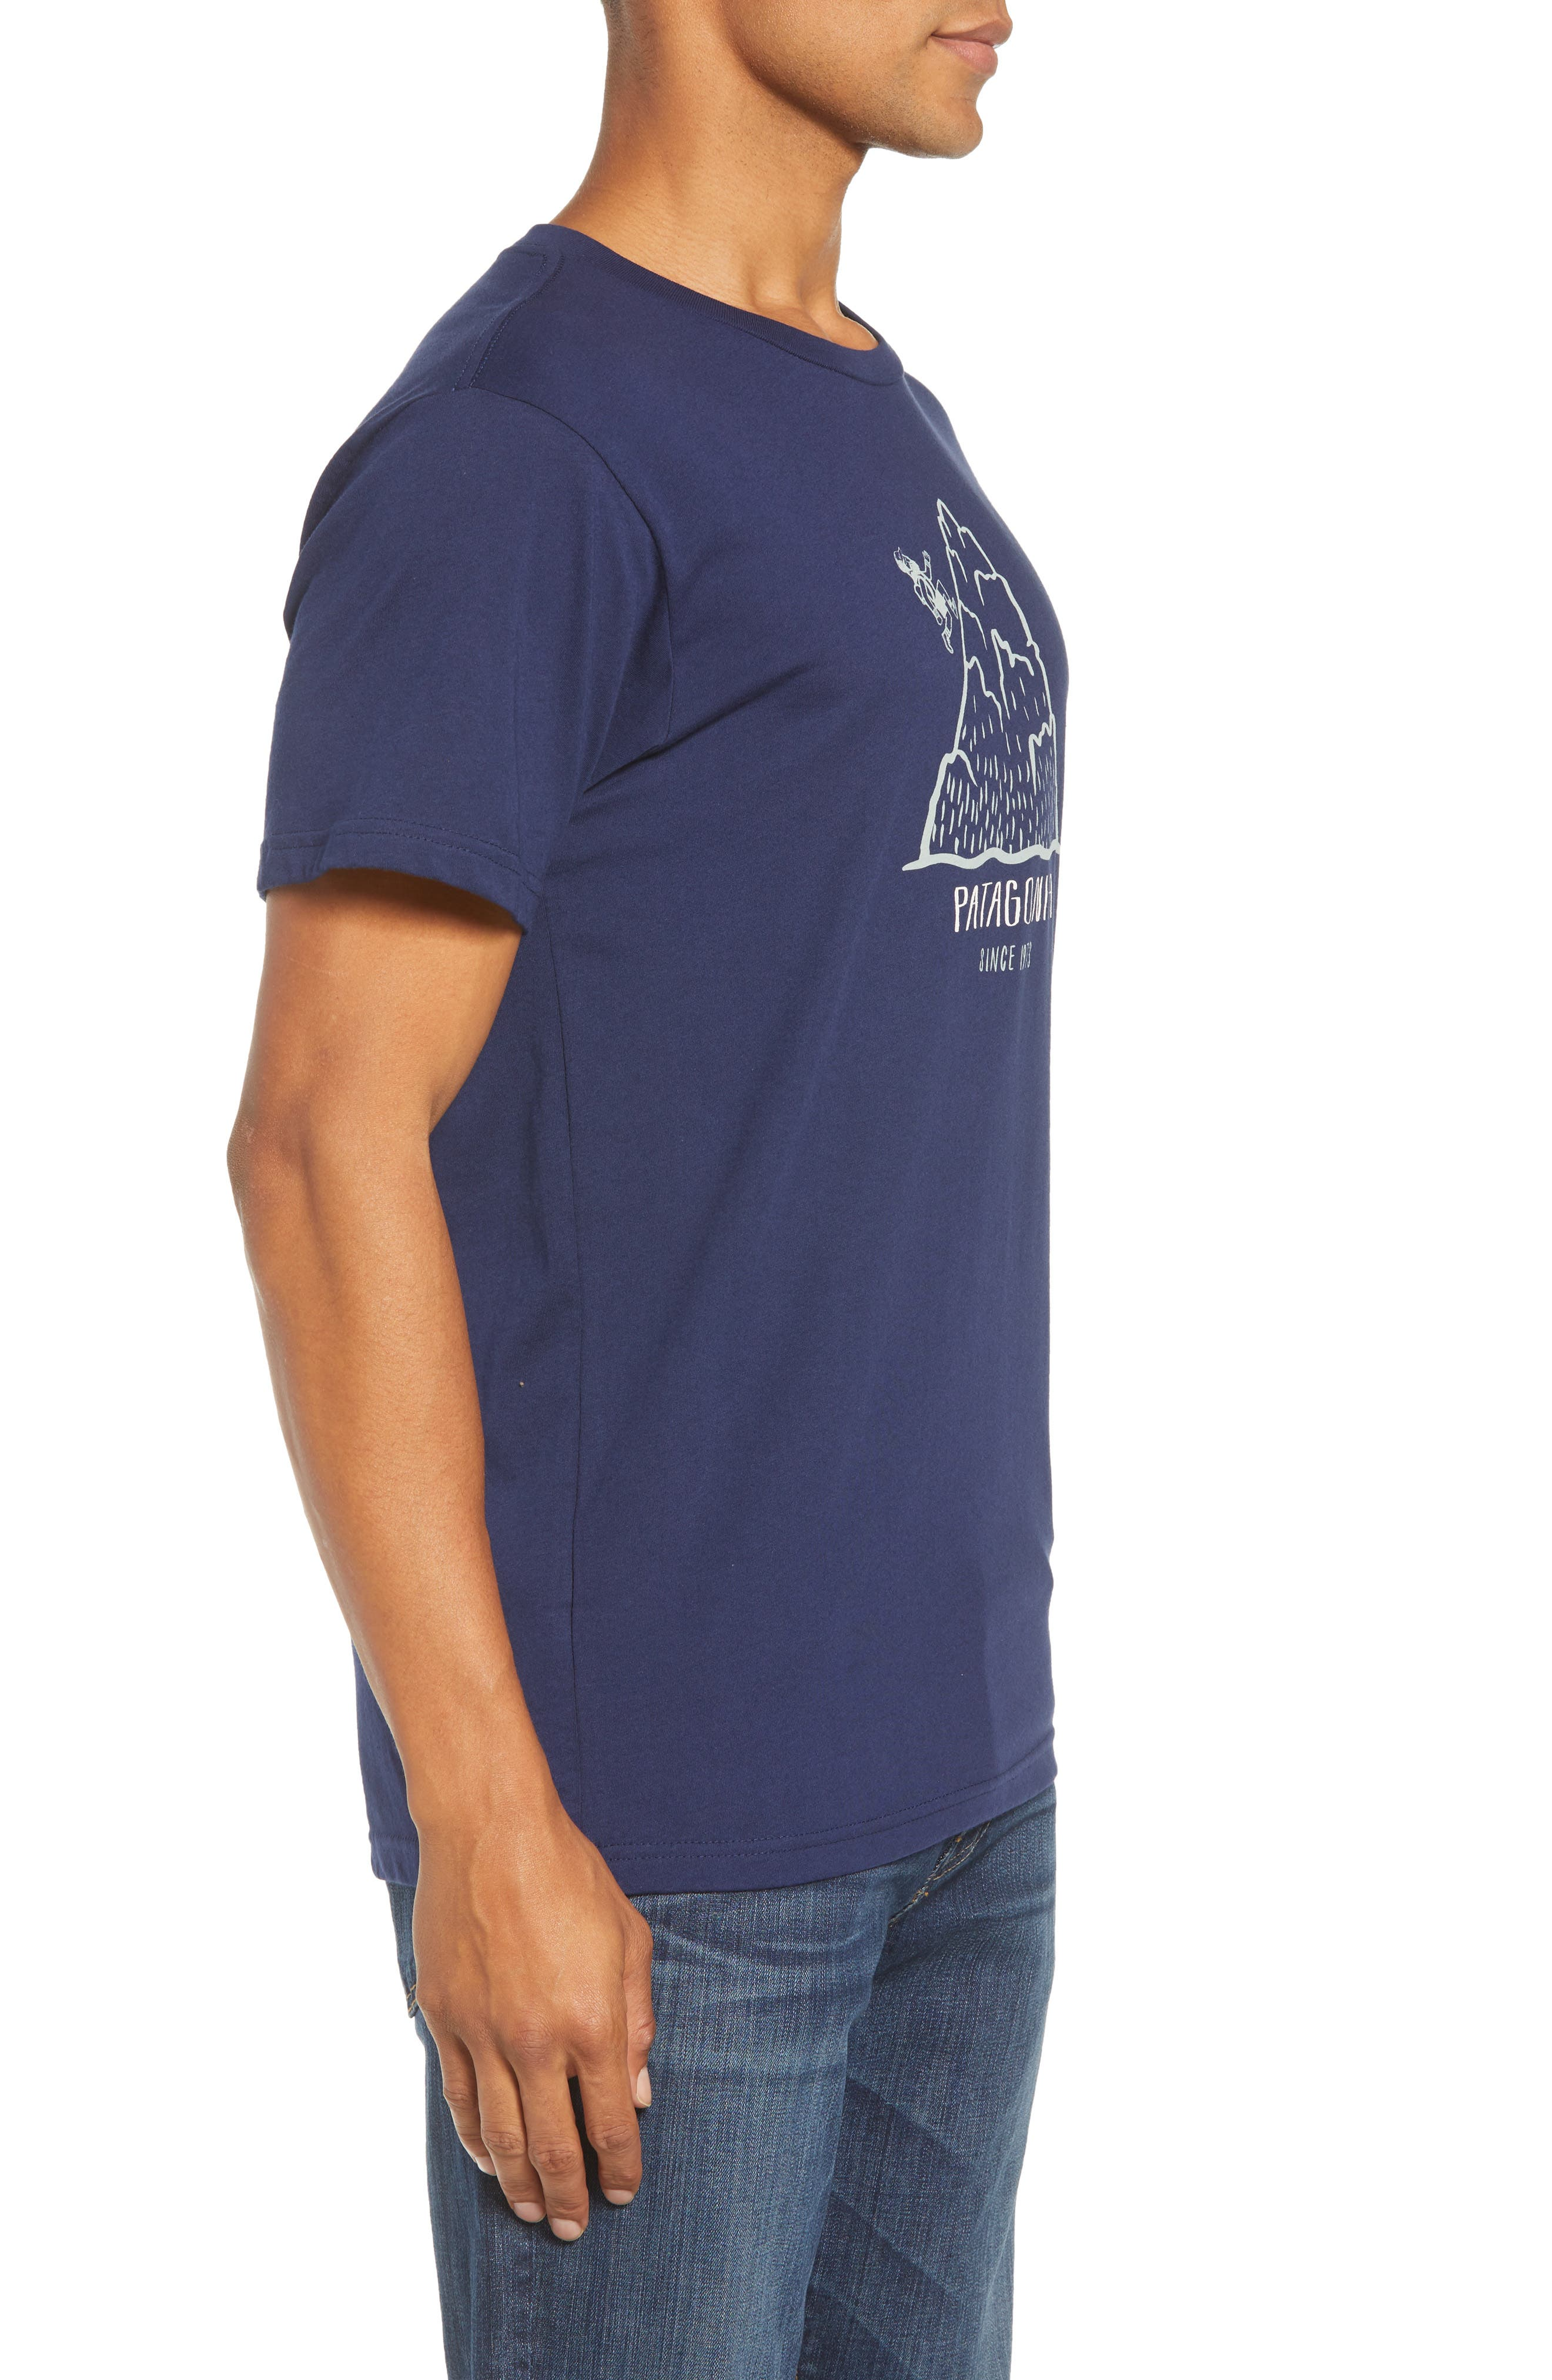 Hoofin It Organic Cotton Graphic T-Shirt,                             Alternate thumbnail 3, color,                             CLASSIC NAVY